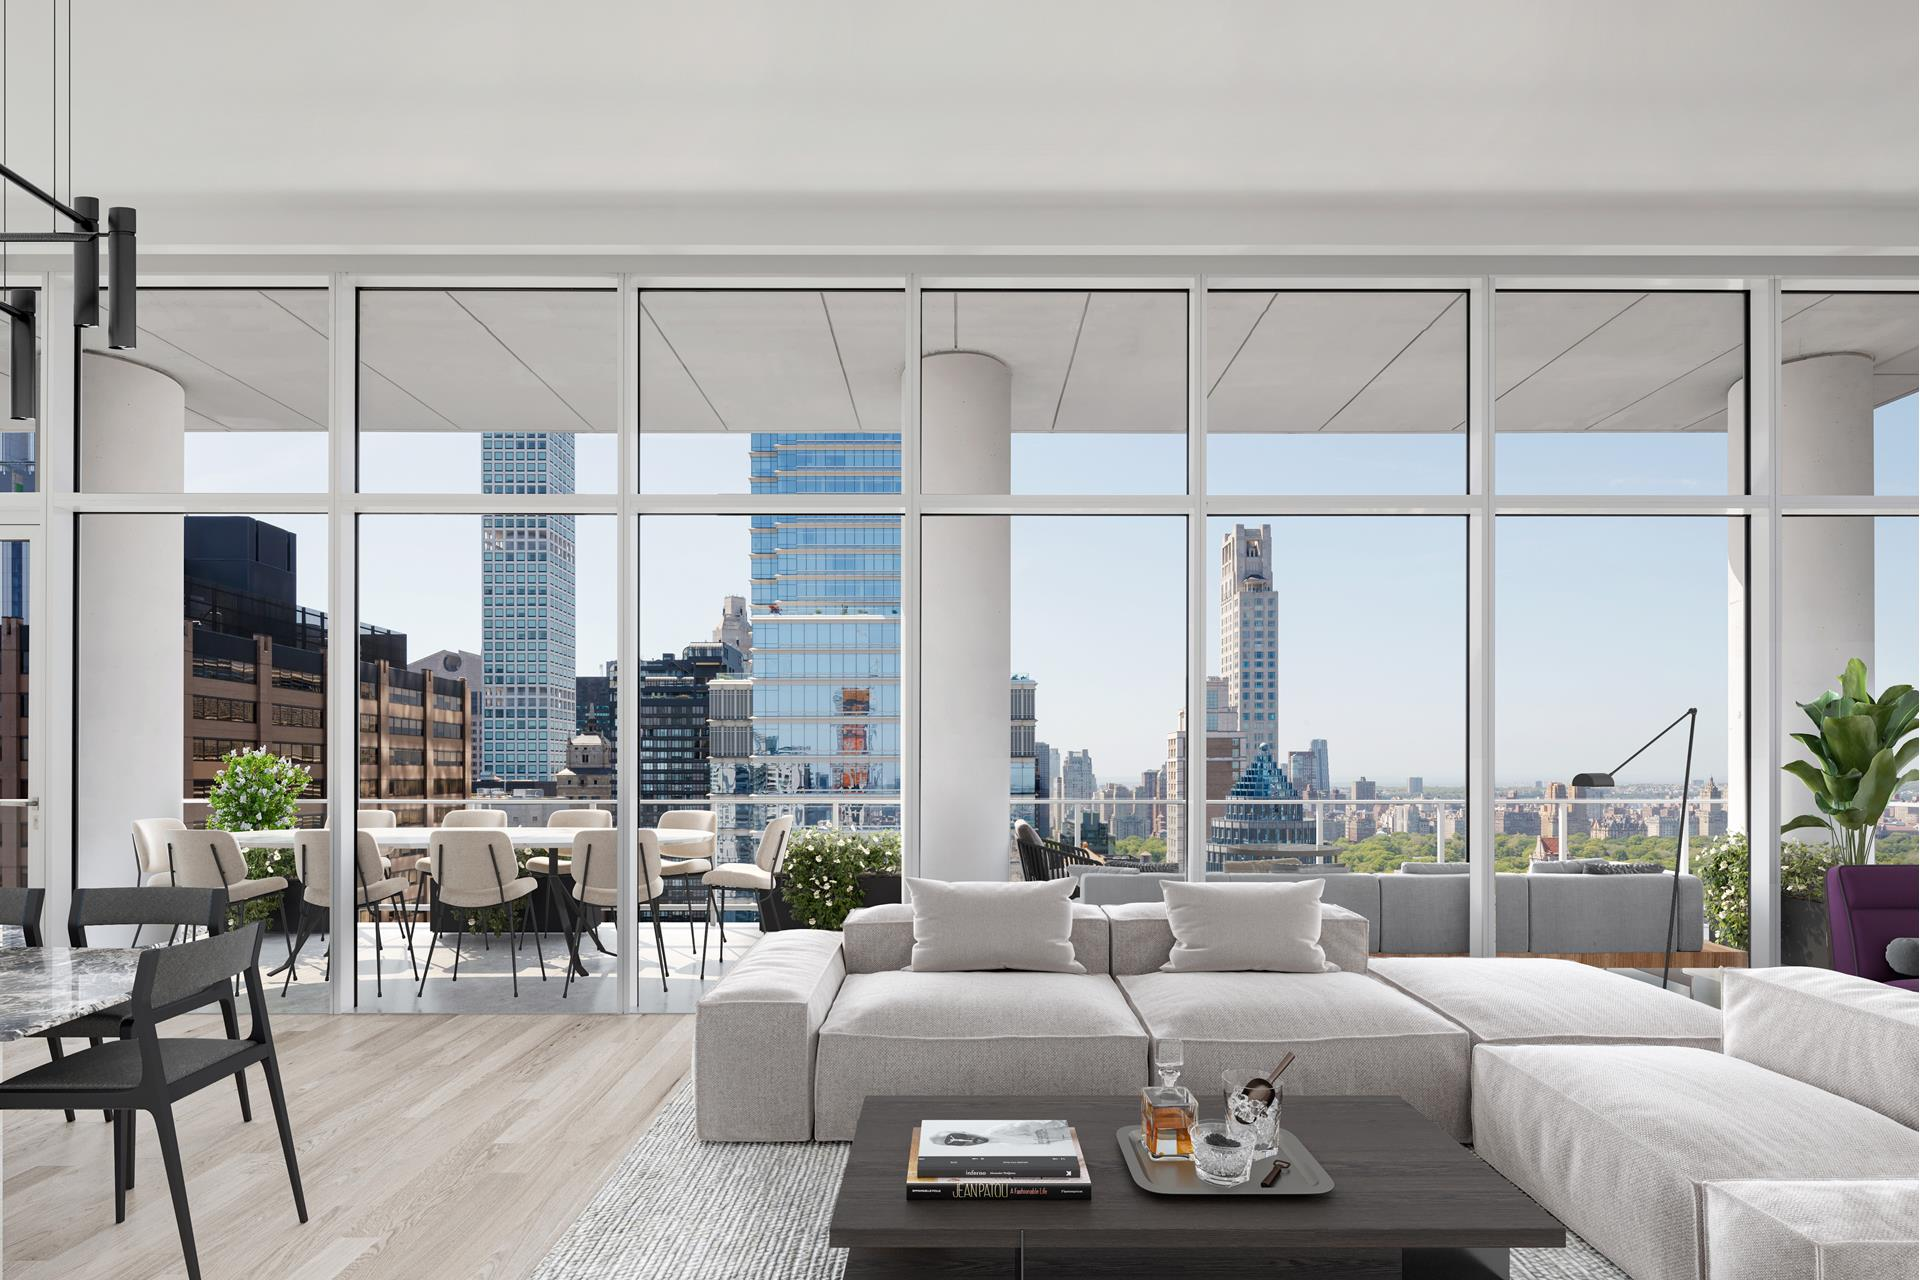 Introducing Penthouse 34, an unparalleled, three-bedroom, three and a half bath full floor residence with 14' finished ceilings, and 148 linear feet of continuous terrace with 360 degree views of Central Park and the Manhattan skyline. The floor to ceiling   glass windows and expansive 14' ceilings tie the inside/out living concept together perfectly. The 3,471 square foot terrace seamlessly connects the corner great room to a kitchen outfitted with Italian white glass and aluminum trim cabinetry by Aran Cuchine,   book matched honed Calacatta marble slab countertops, a natural white oak island and full-height backsplashes, and integrated Brilliant White glass appliances by Miele including an integrated wine refrigerator. The expansive northern facing master bedroom   features two separate dressing rooms and a luxurious en-suite master bath clad with Siberian white polished marble walls and honed marble floors with radiant heating. A floating vanity is crafted from Siberian mink polished marble, fixtures by Watermarks contemporary   Loft 24 Collection in a polished chrome finish, and a spa-like floor-to-ceiling glass enclosed rain shower with thermostatic controls along with a freestanding deep-soaking bathtub. Wall-mounted toilets are by Toto. A washer and dryer is tucked away in the   tranquil powder room with custom-designed pedestal sink, Cremo Delicato honed marble slab floor with a Ceruse finished white oak feature wall which completes this elegant residence.    The complete terms are in an offering plan available from the Sponsor (File No: CD 16-0082)